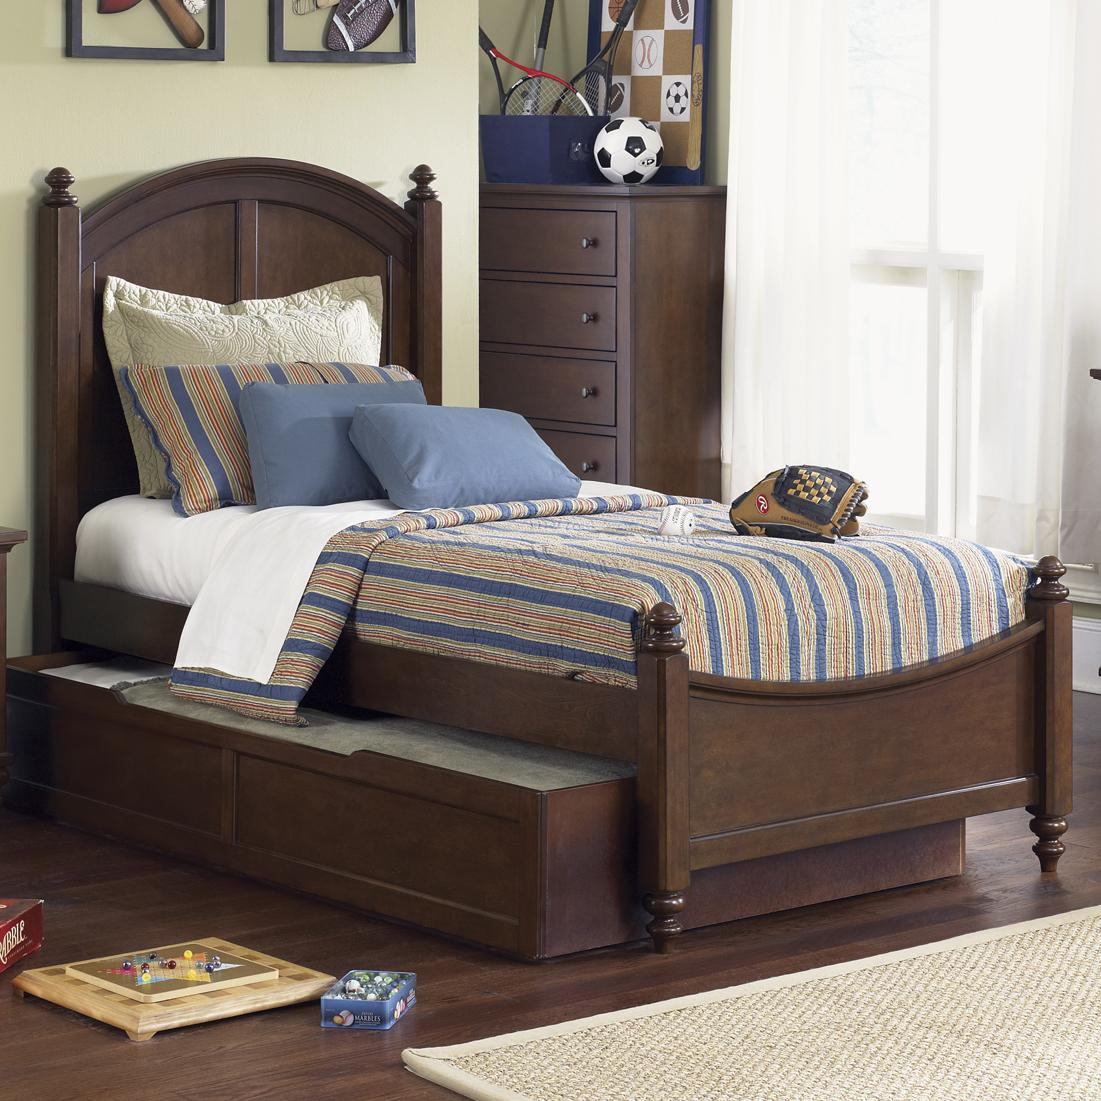 Liberty Furniture Abbott Ridge Youth Bedroom Twin Panel Bed - Item Number: 277-YBR-SET87